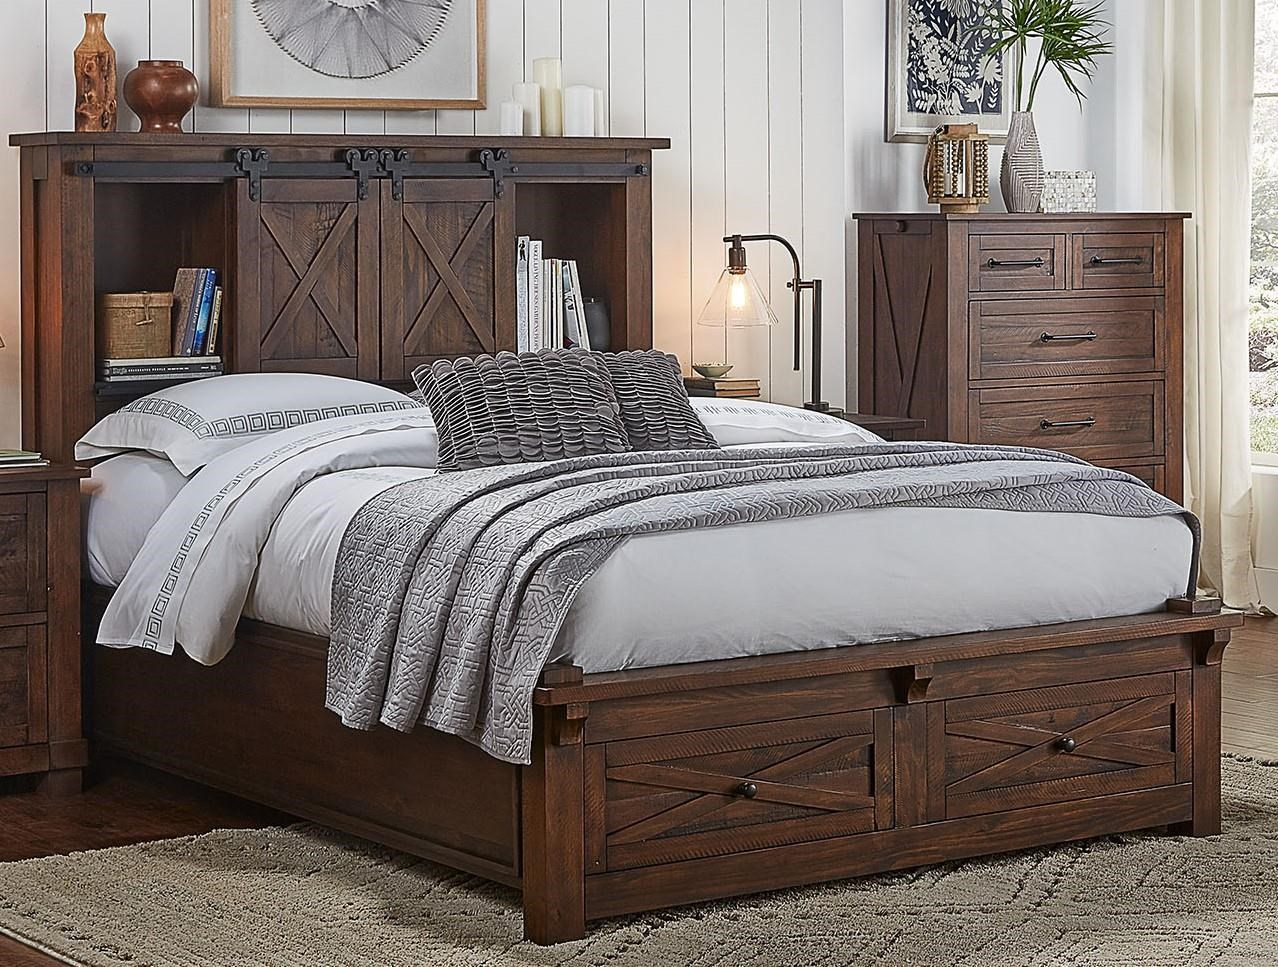 Sun Valley Queen Storage Bed by AAmerica at Furniture Superstore - Rochester, MN